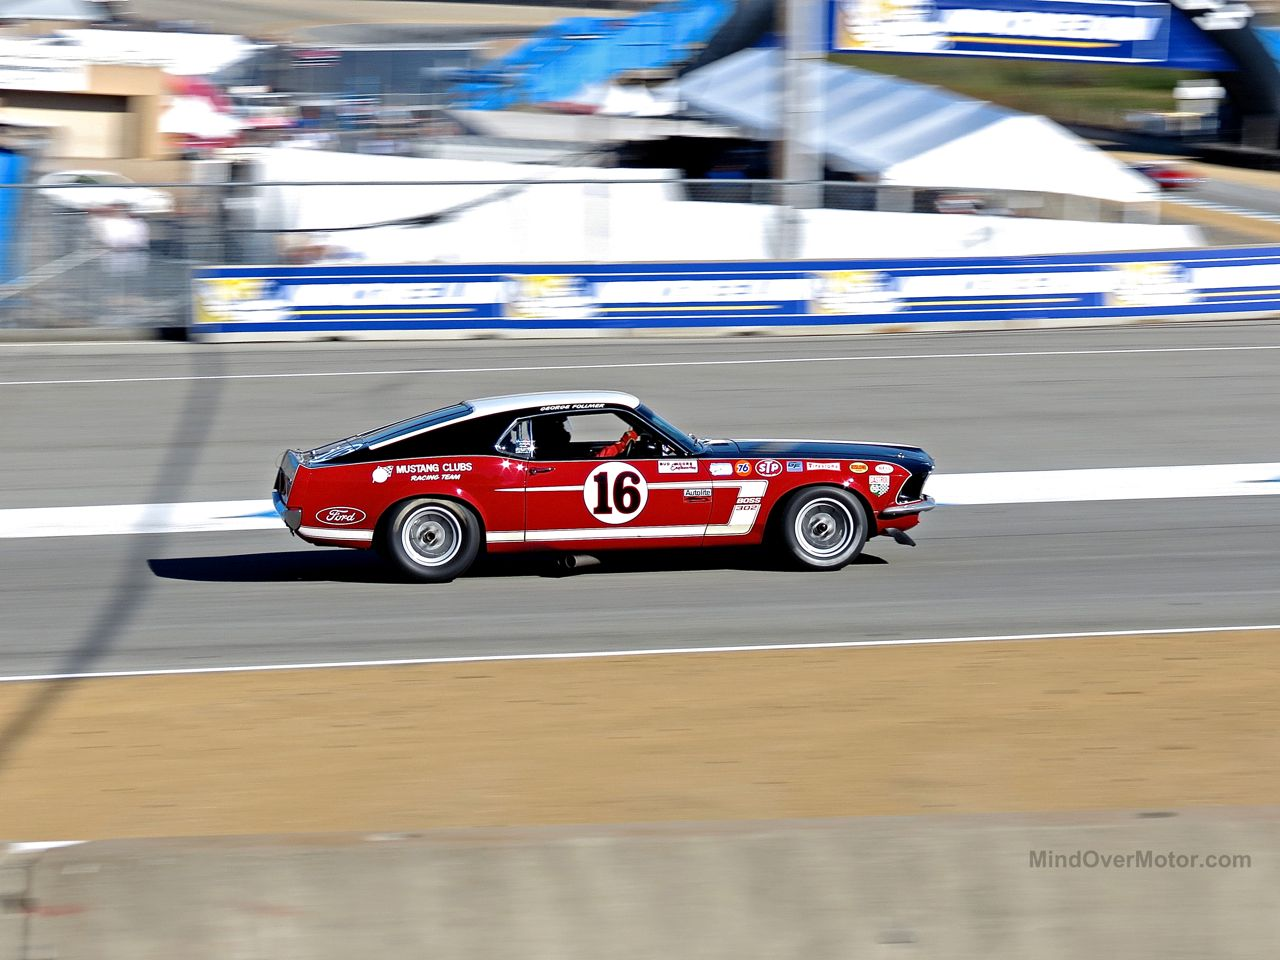 Ford Mustang Racing Car Laguna Seca